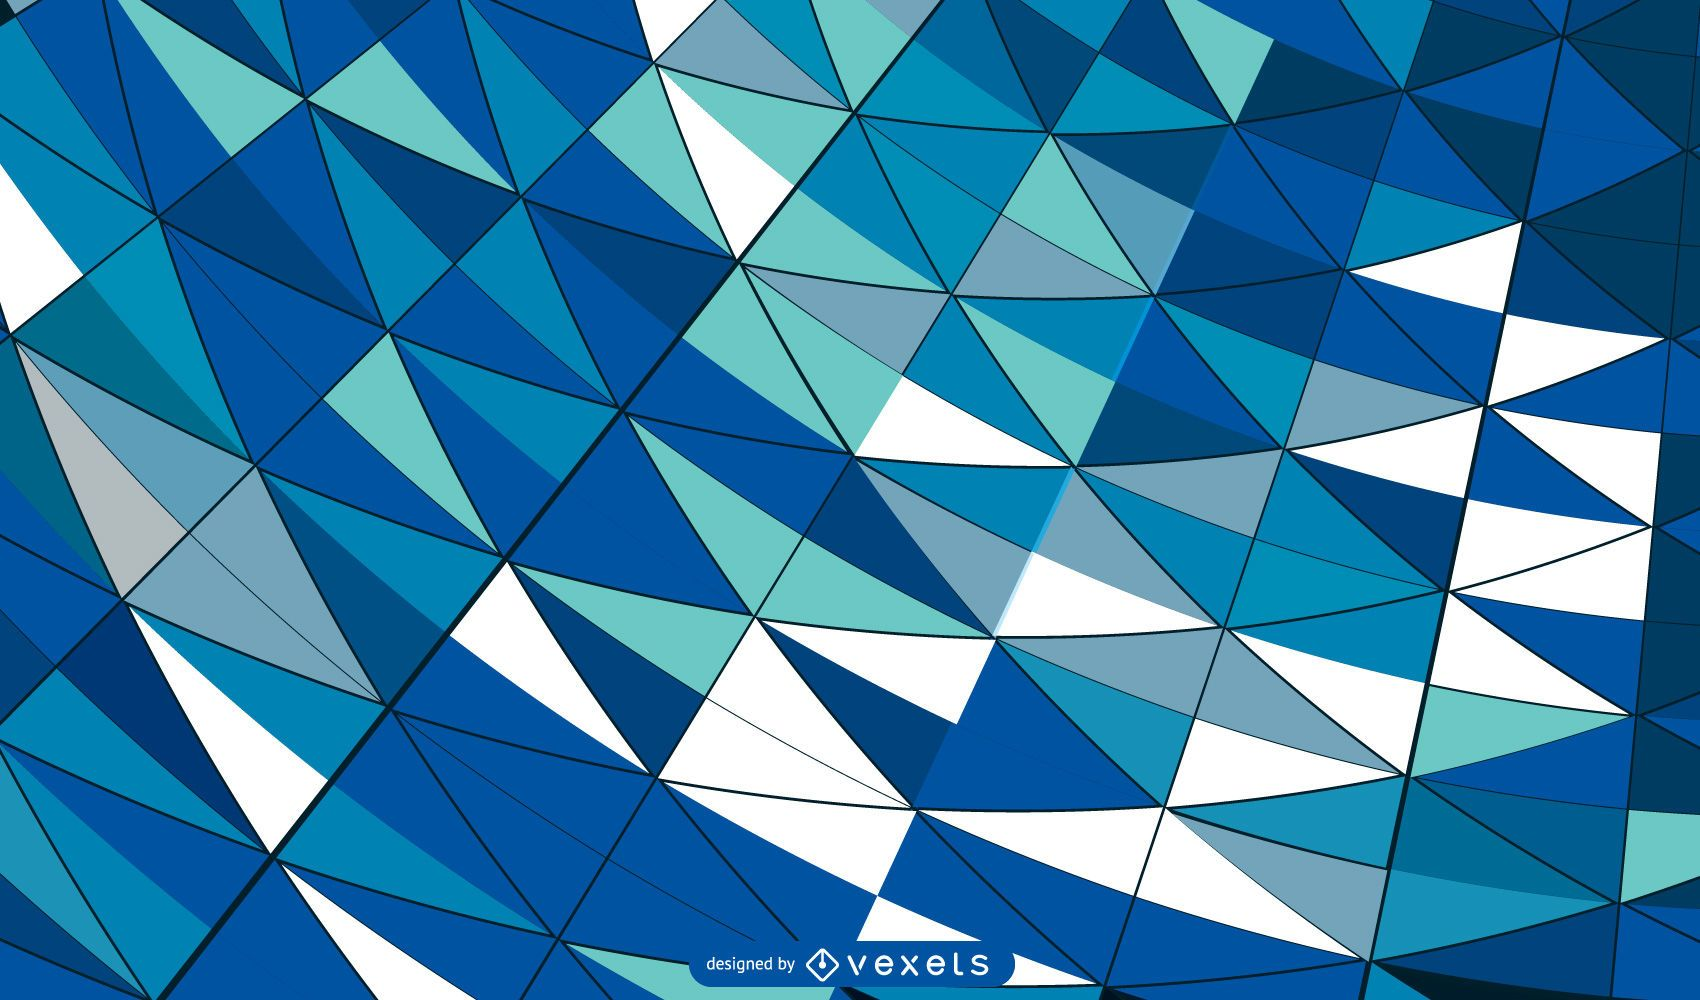 Curvy Formed Colorful Mosaic Tiled Background